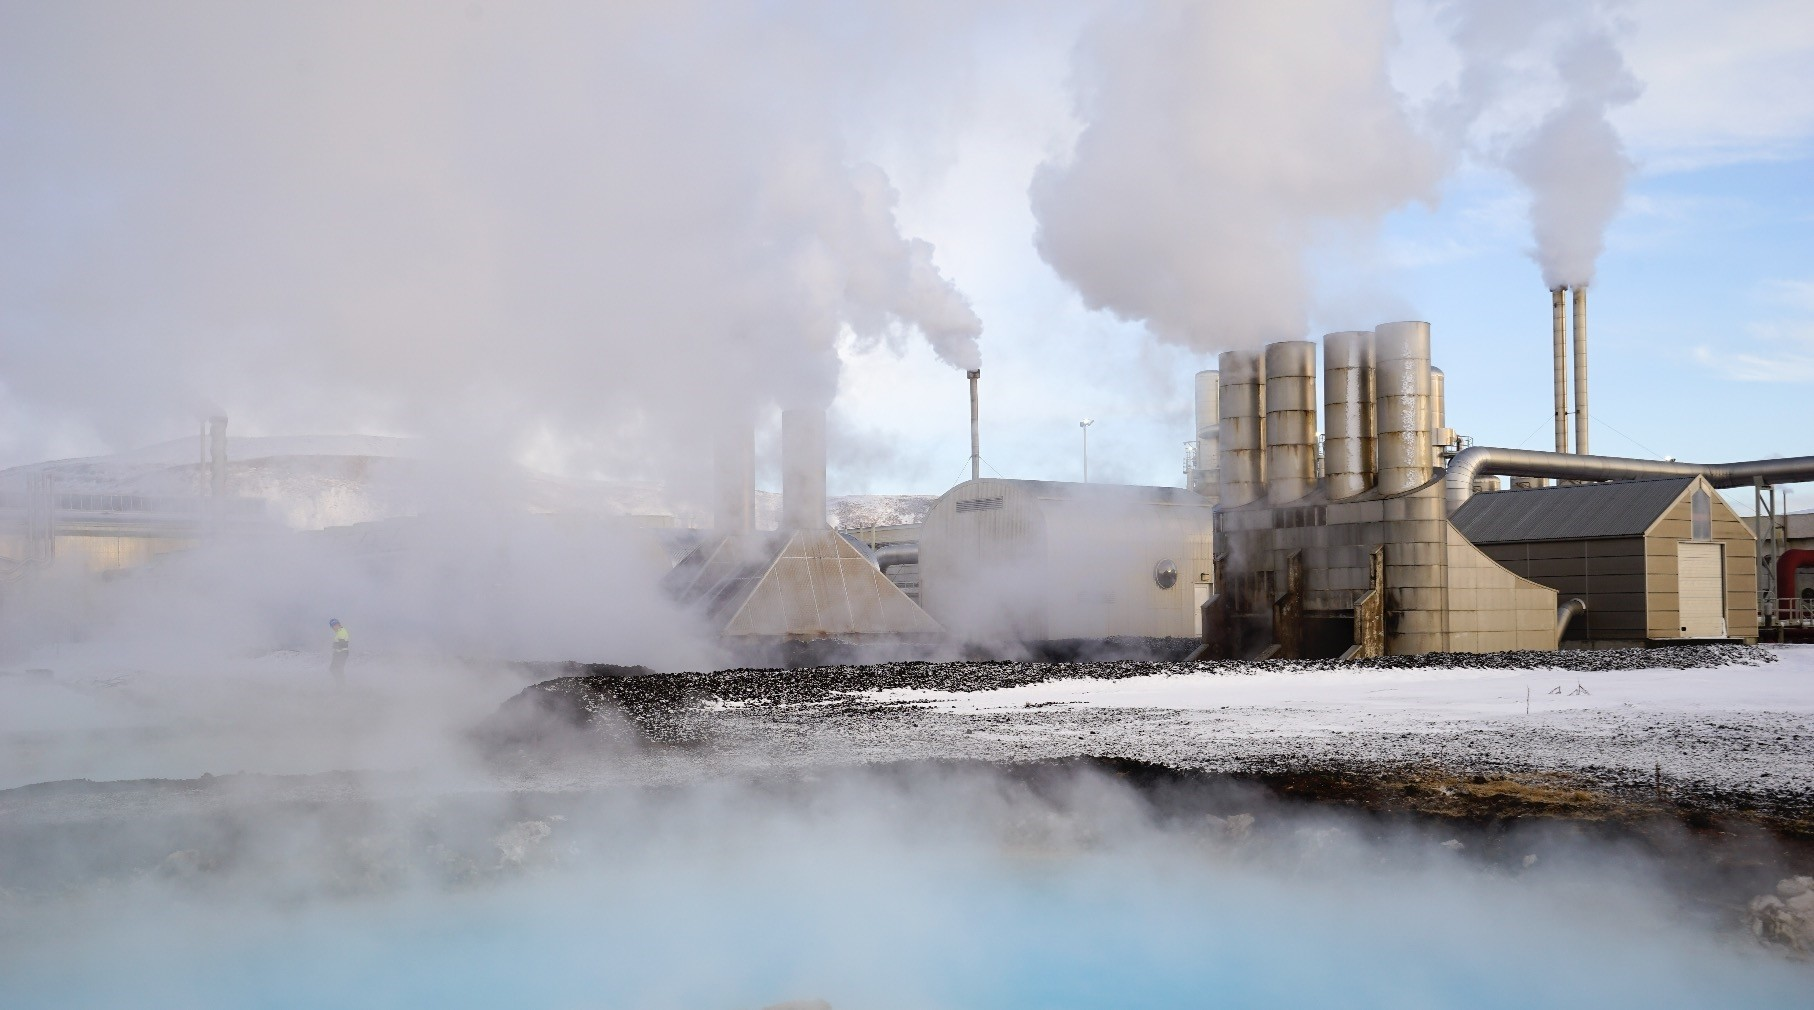 Large clouds of steam rise into the sky from the Svartsengi geothermal power station in Grindavak, Iceland.